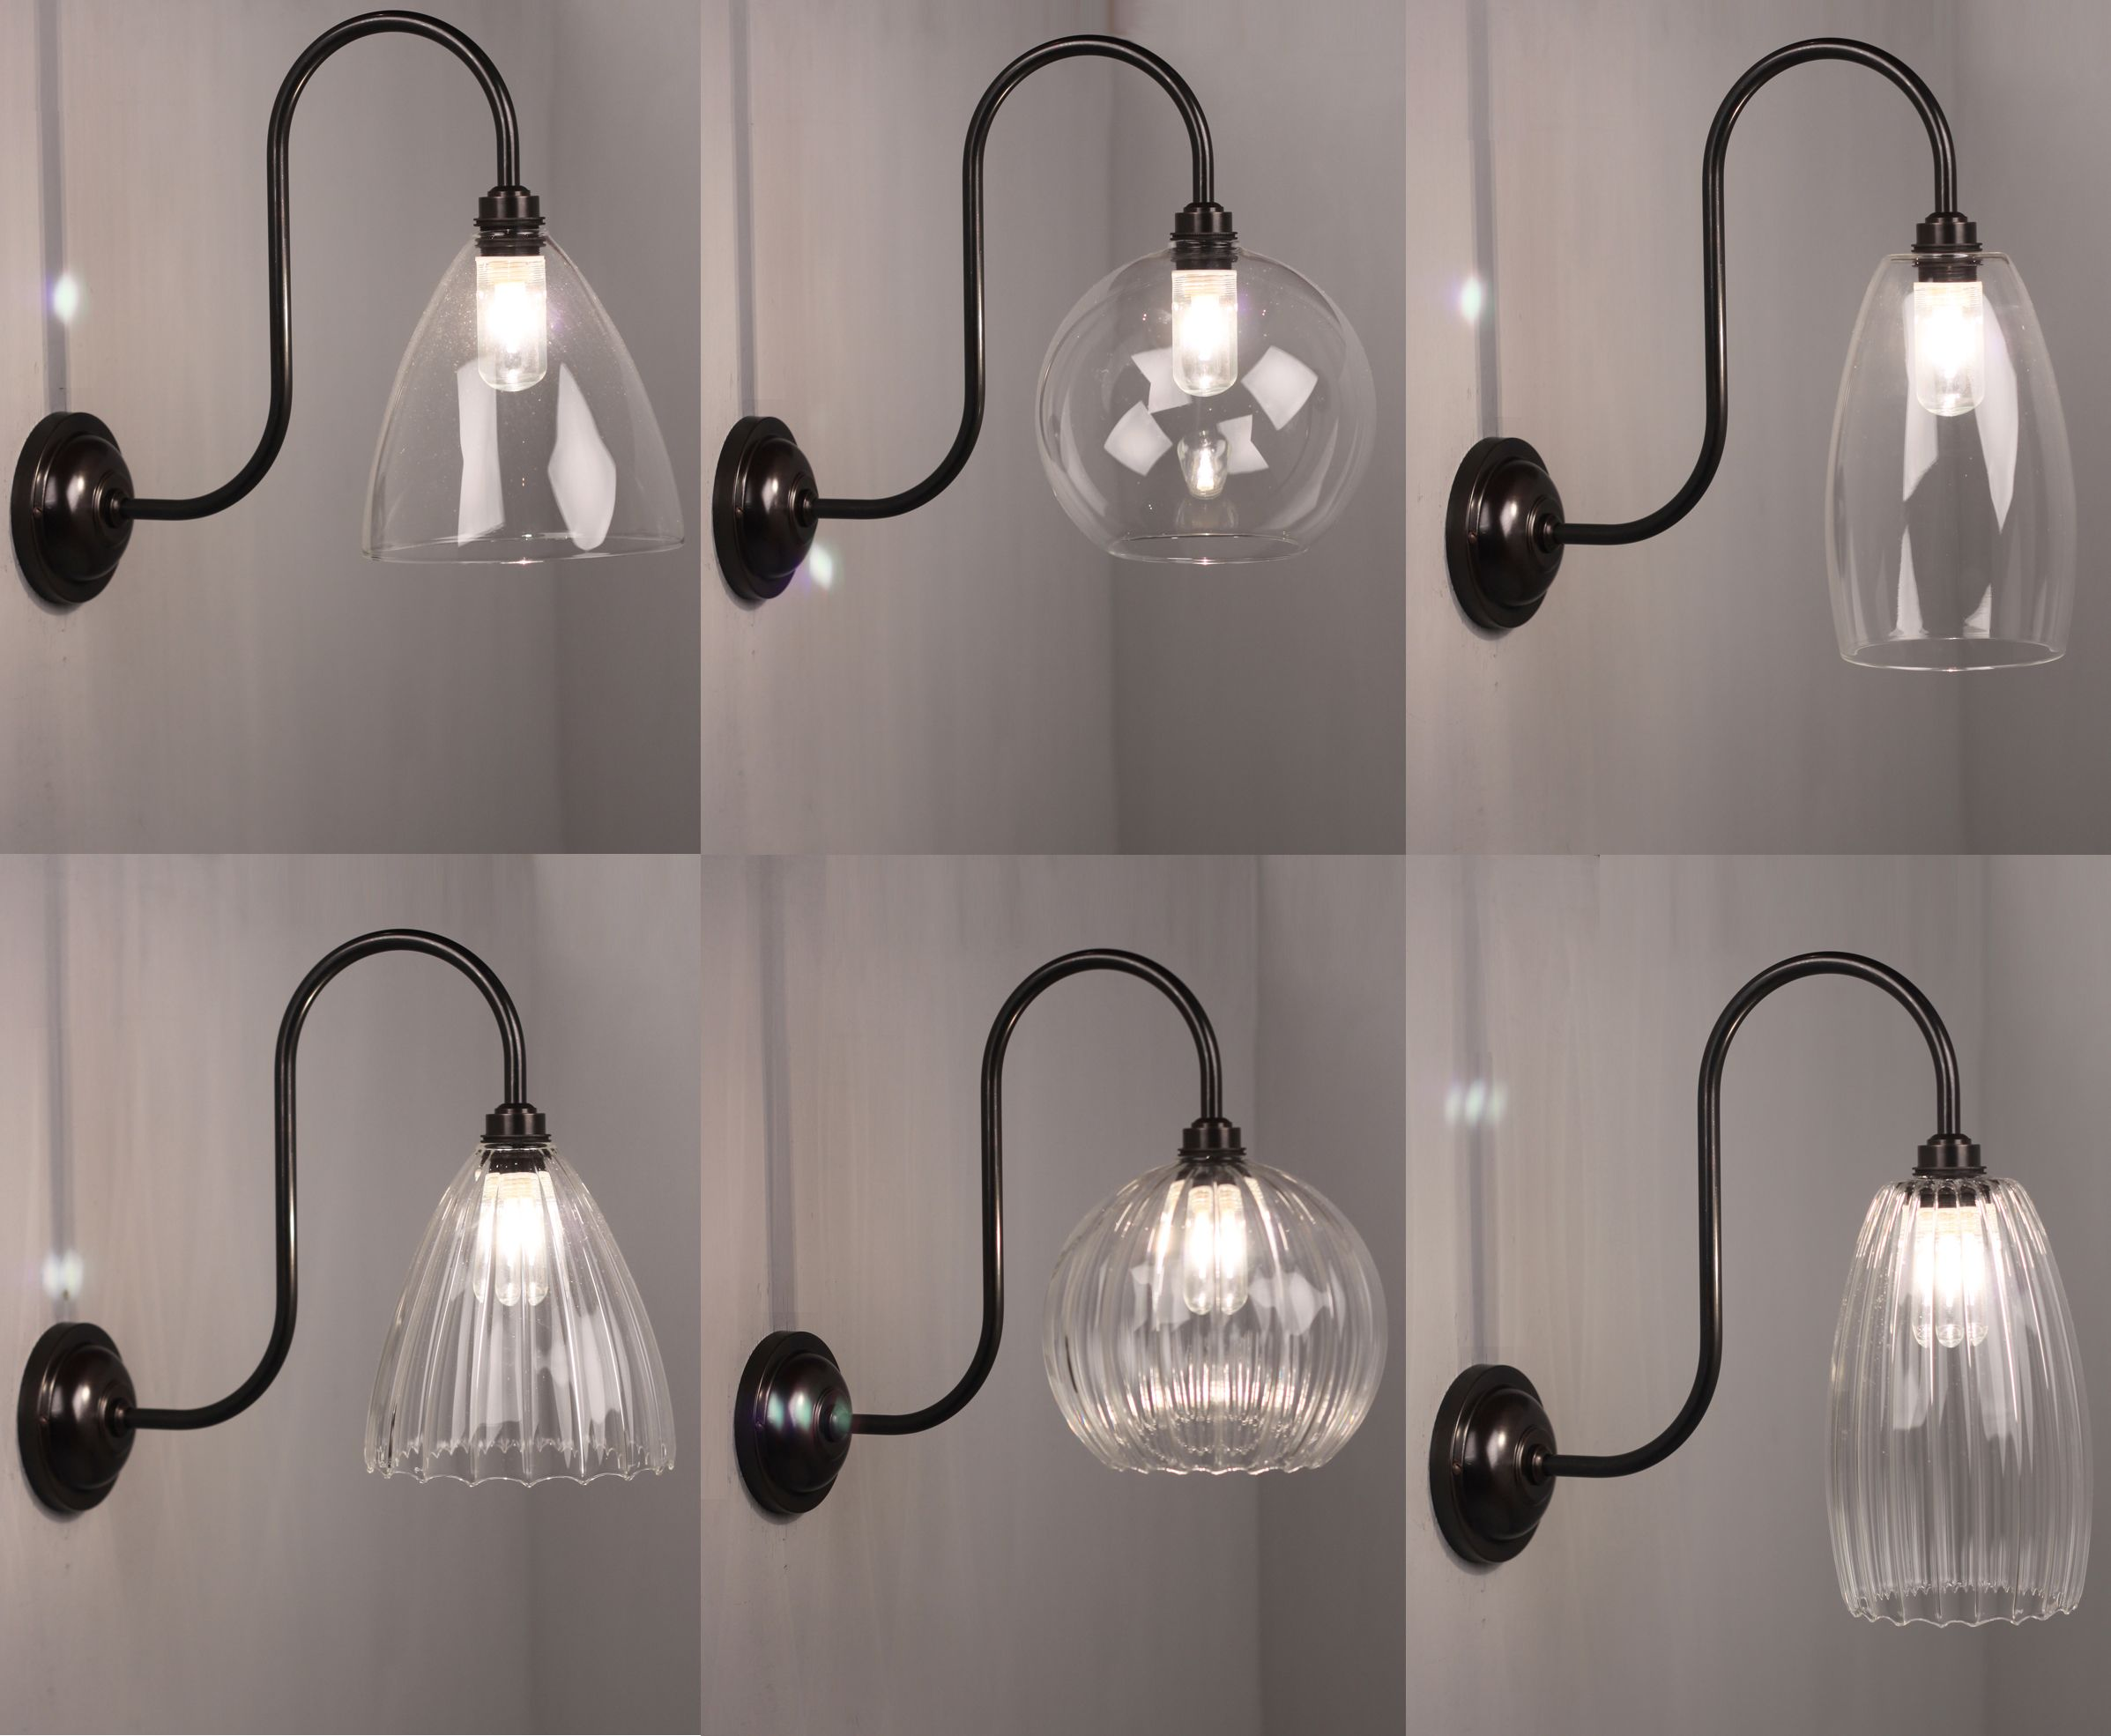 Our New Range Of Ip44 Rated Swan Neck Bathroom Lights With